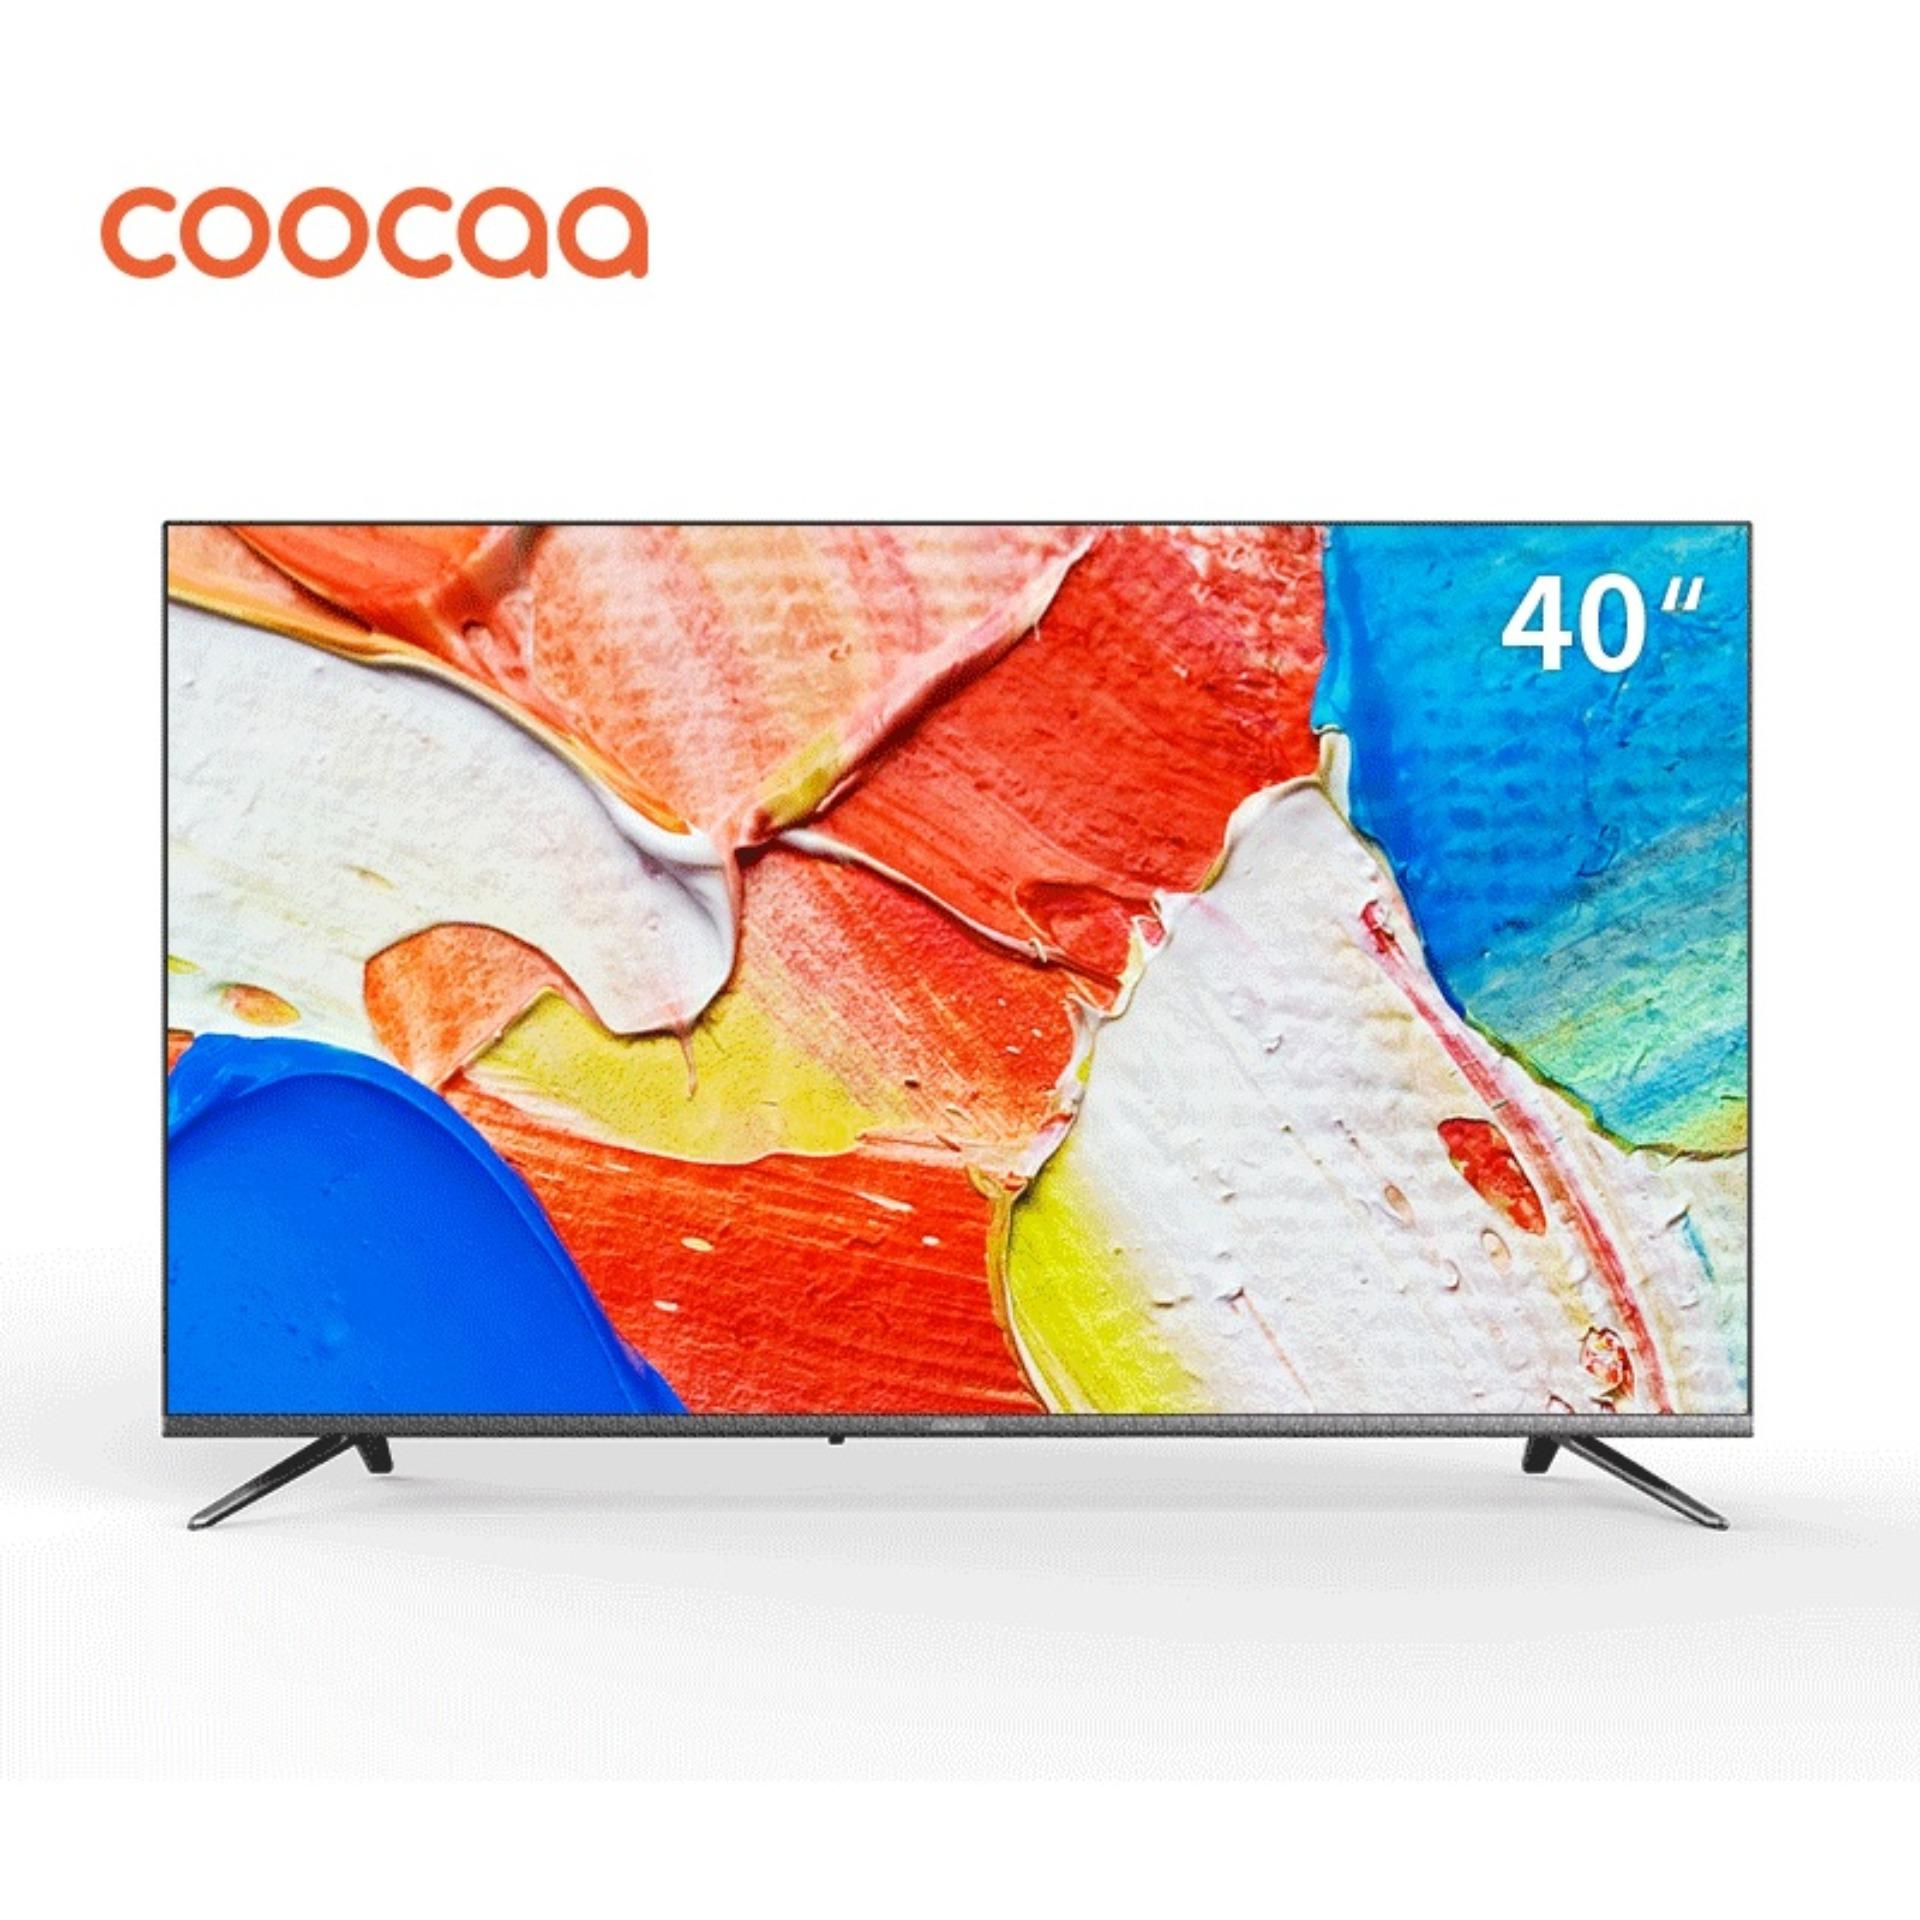 33dcb5e4ca8 COOCAA 40 Inch Smart Netflix Built-In Frameless FHD LED TV -Slim Wifi (